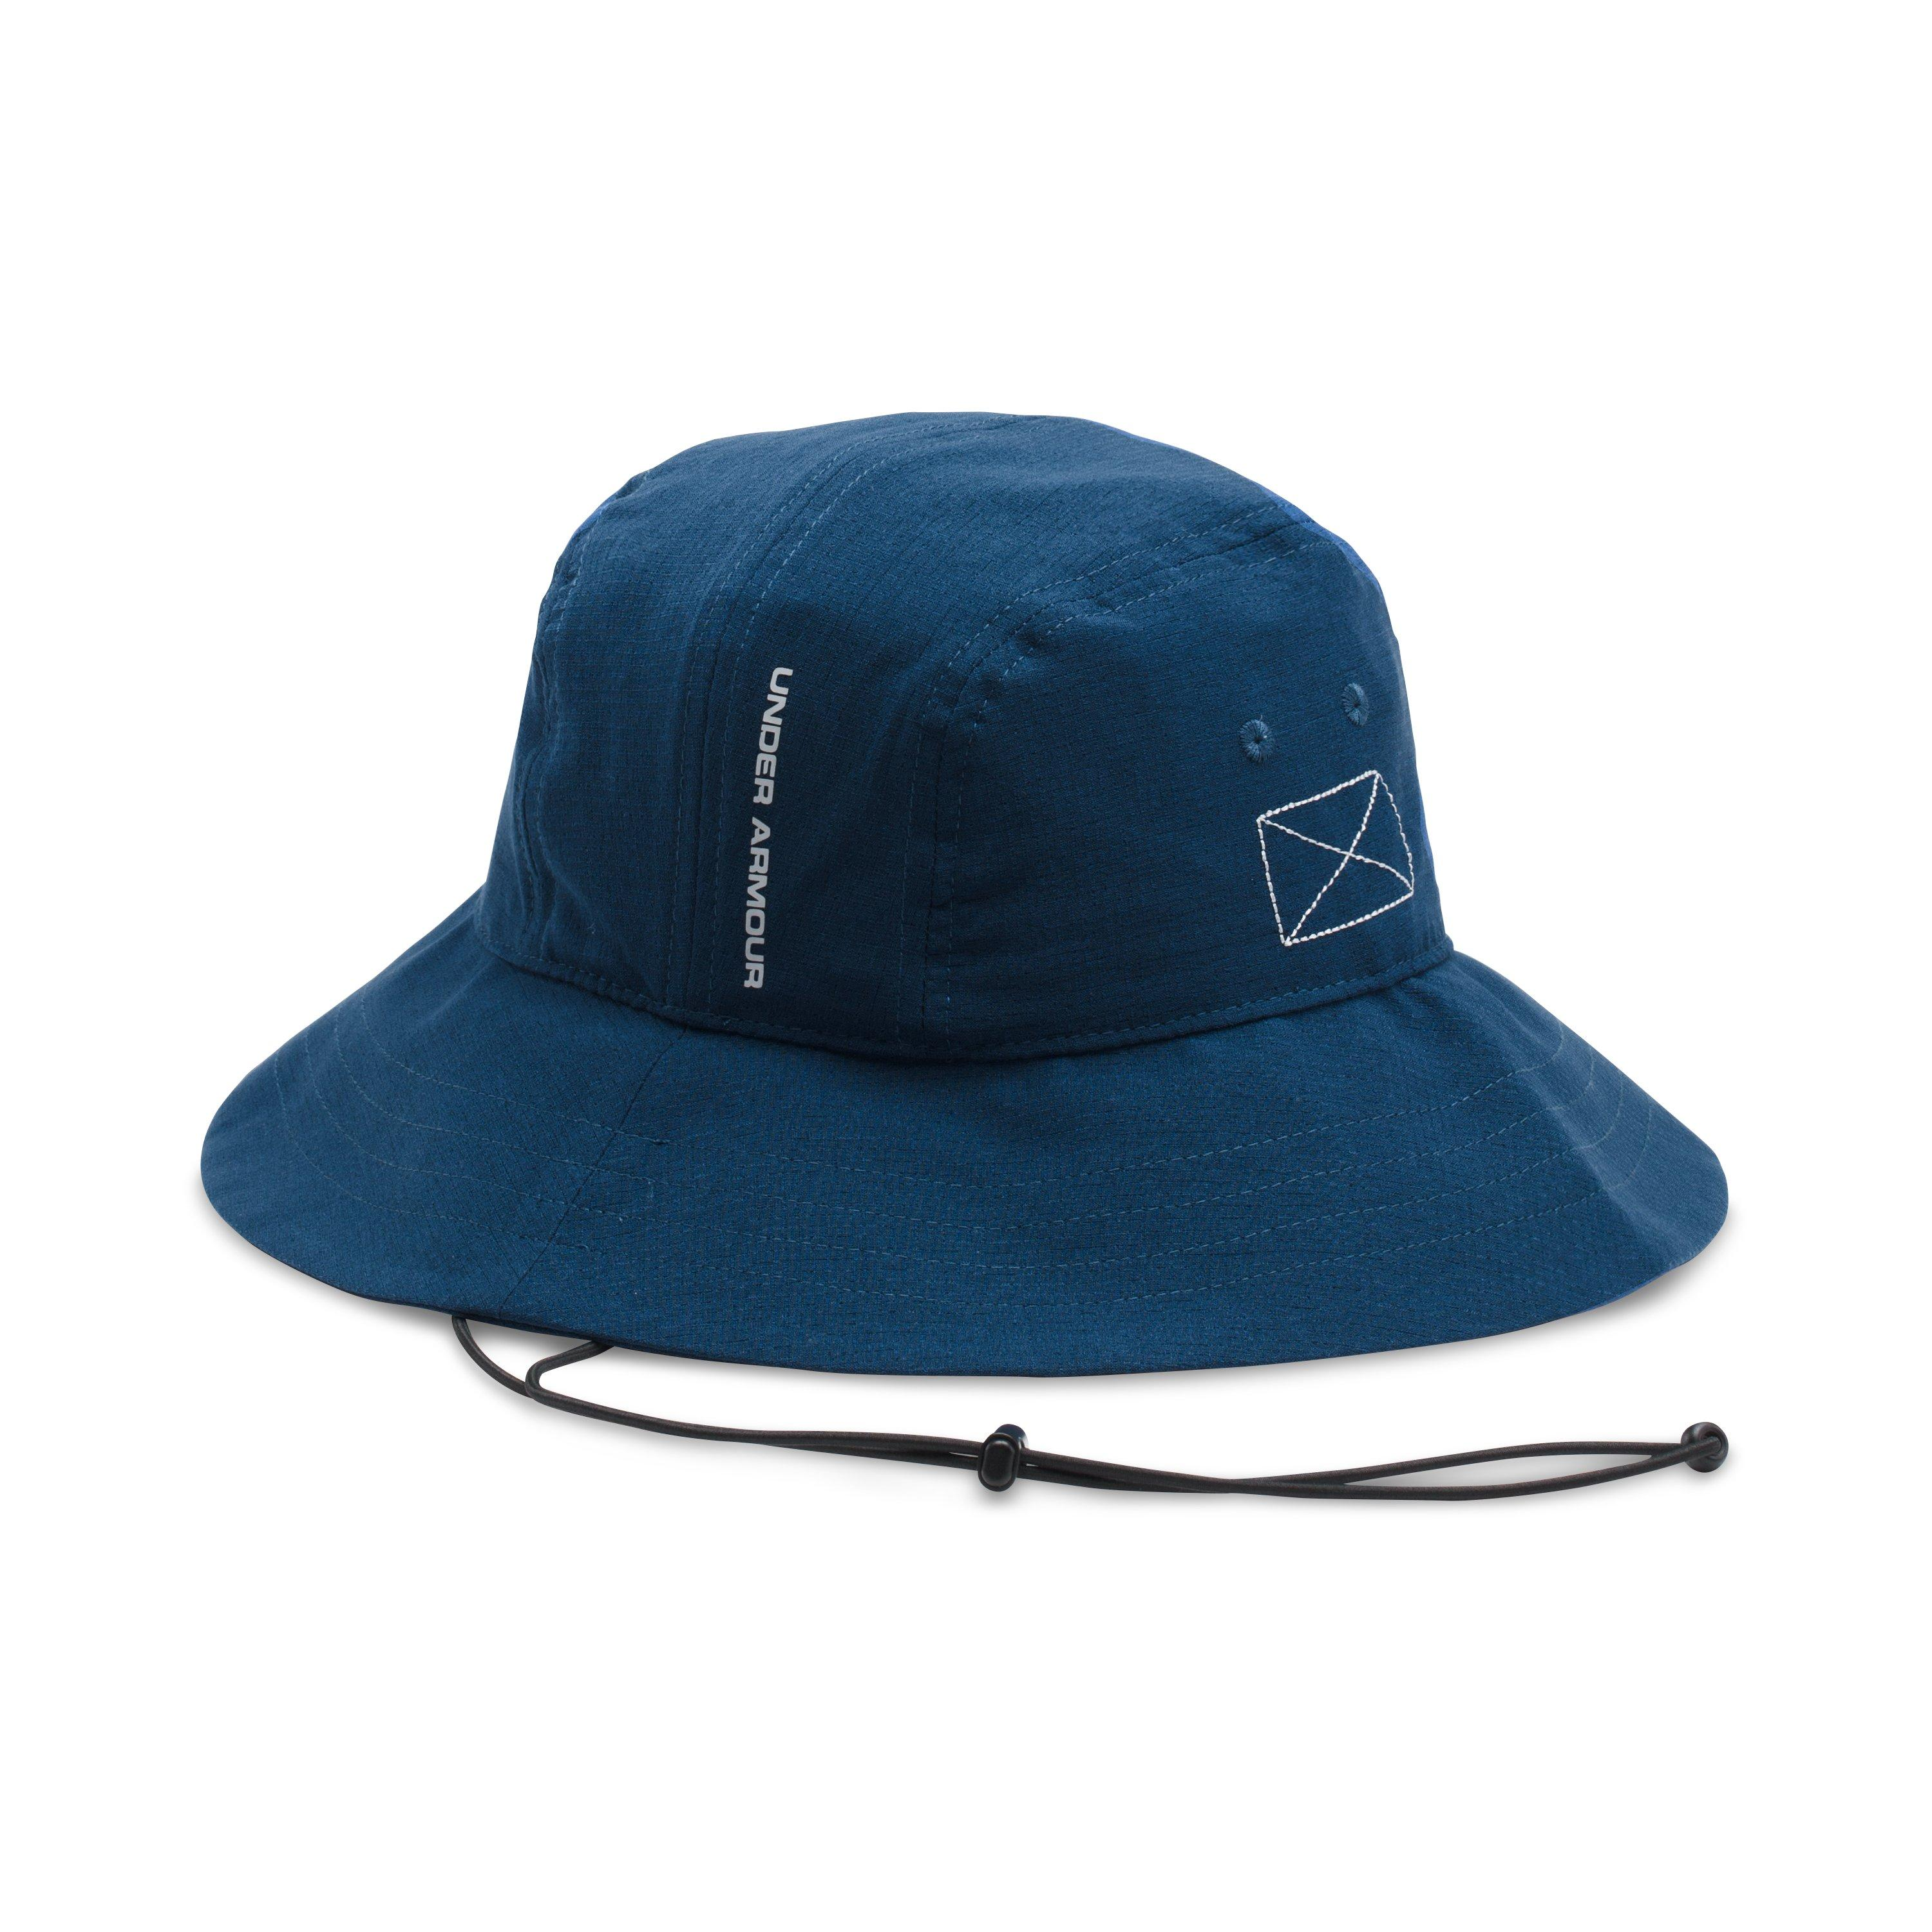 34e51fae3f6 ... buy lyst under armour mens ua armourventtm bucket hat in blue for men  3cac9 21924